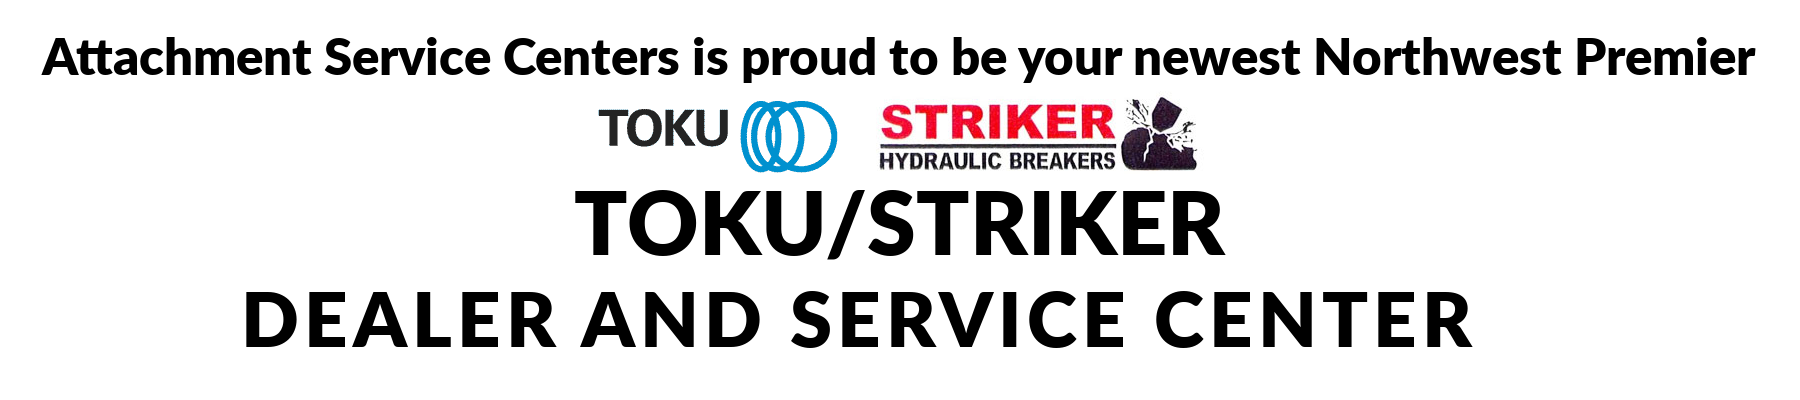 TOKu_striker_banner